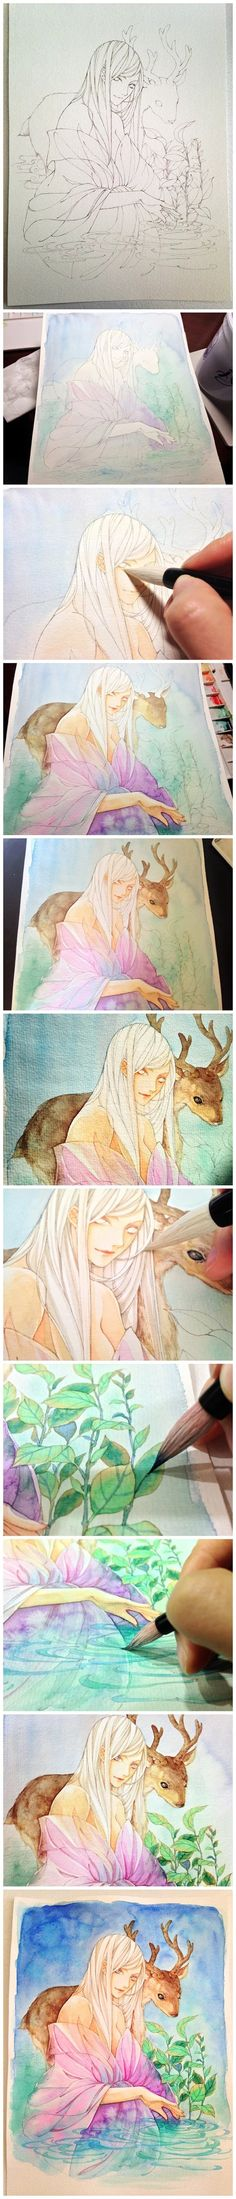 Does anyone know what art product is this made with? What is the paintbrush brand and where can I get it? I totally want those art supplies. This art is really pretty isn't it?